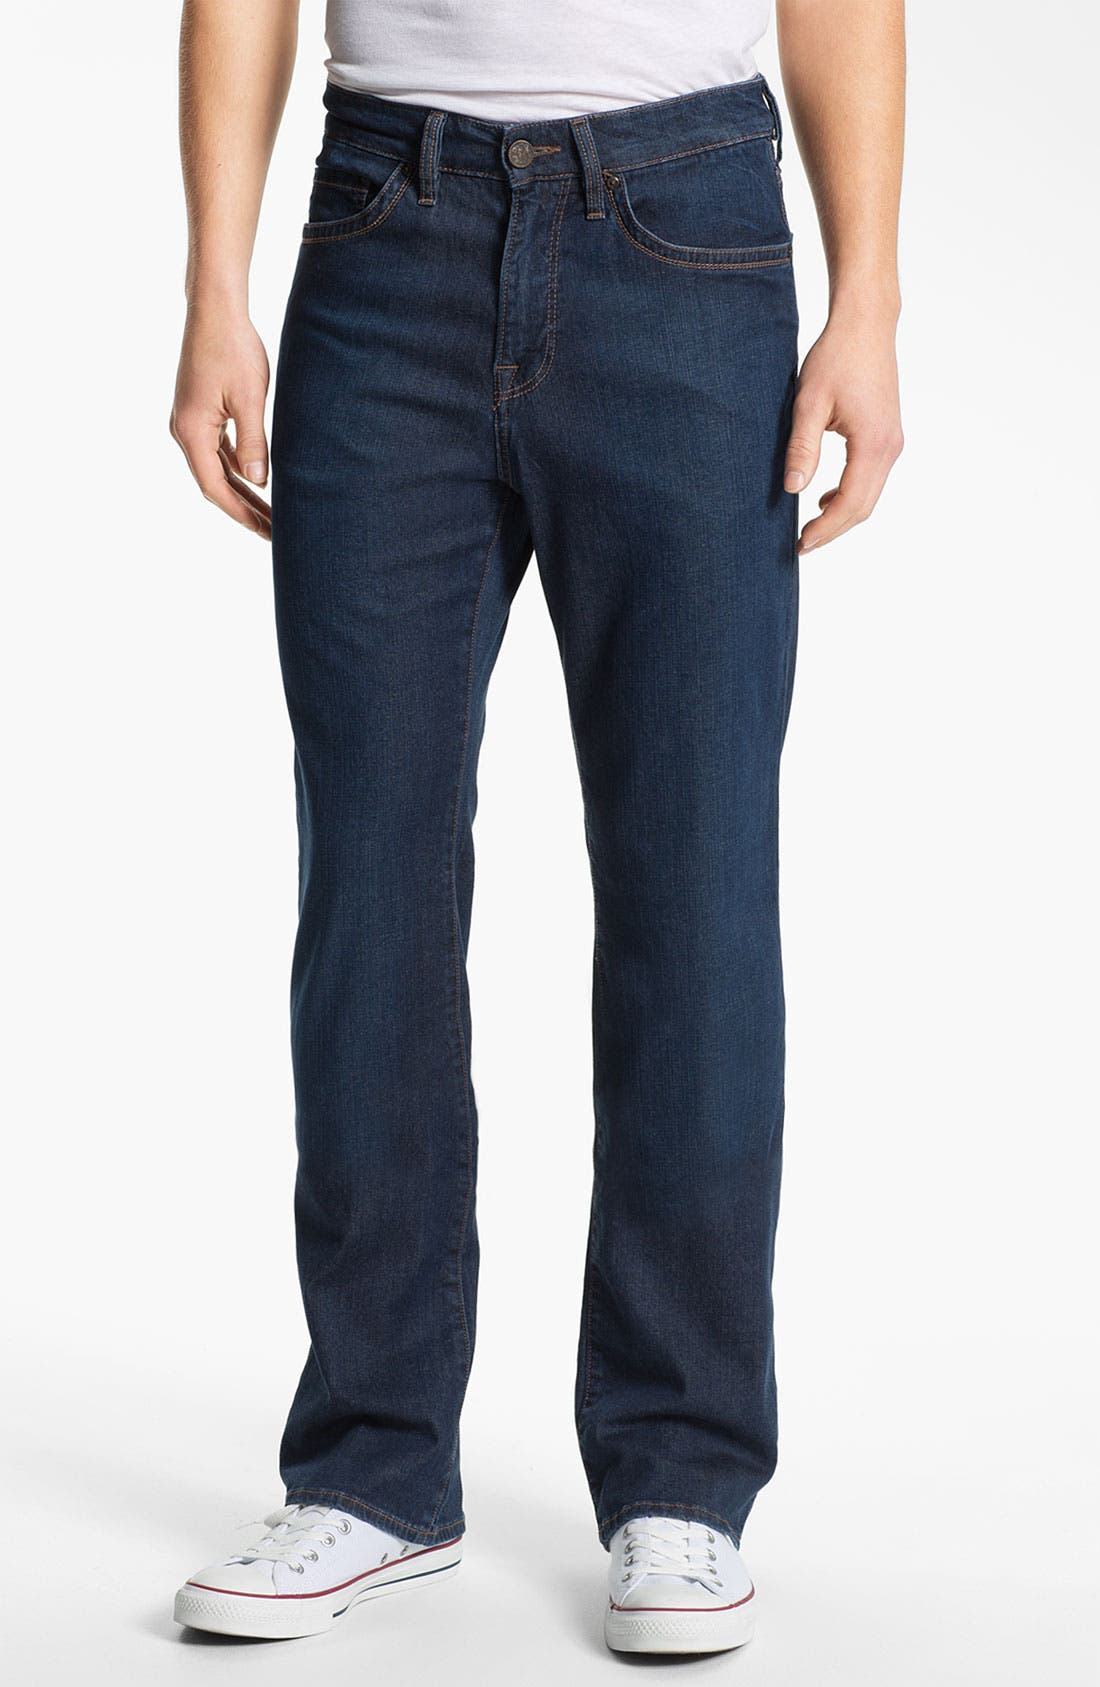 34 HERITAGE 'Charisma' Classic Relaxed Fit Jeans, Main, color, DARK CASHMERE WASH